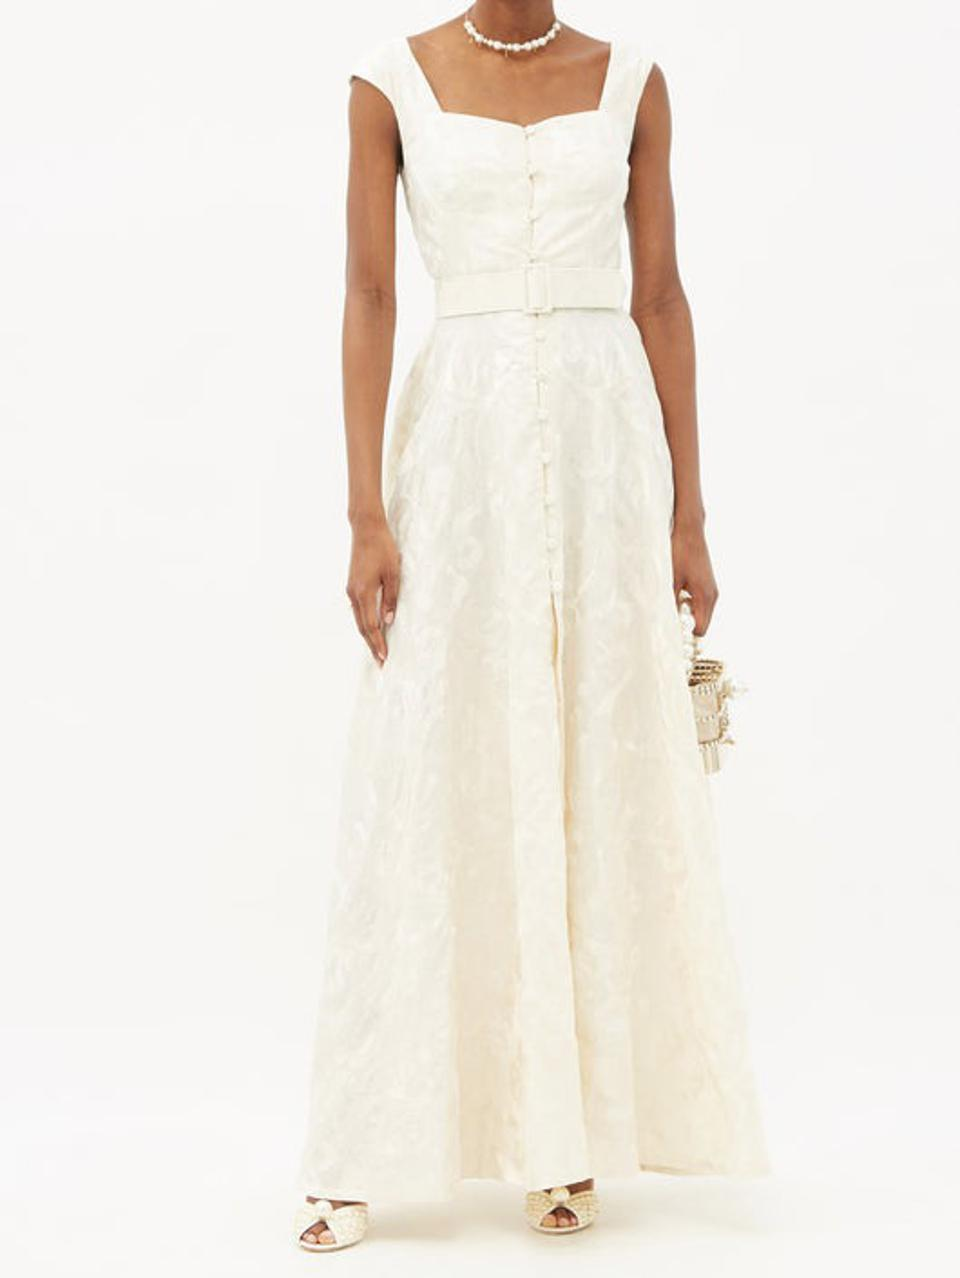 Belted Floral-Embroidered Linen Gown by Marta Ferri